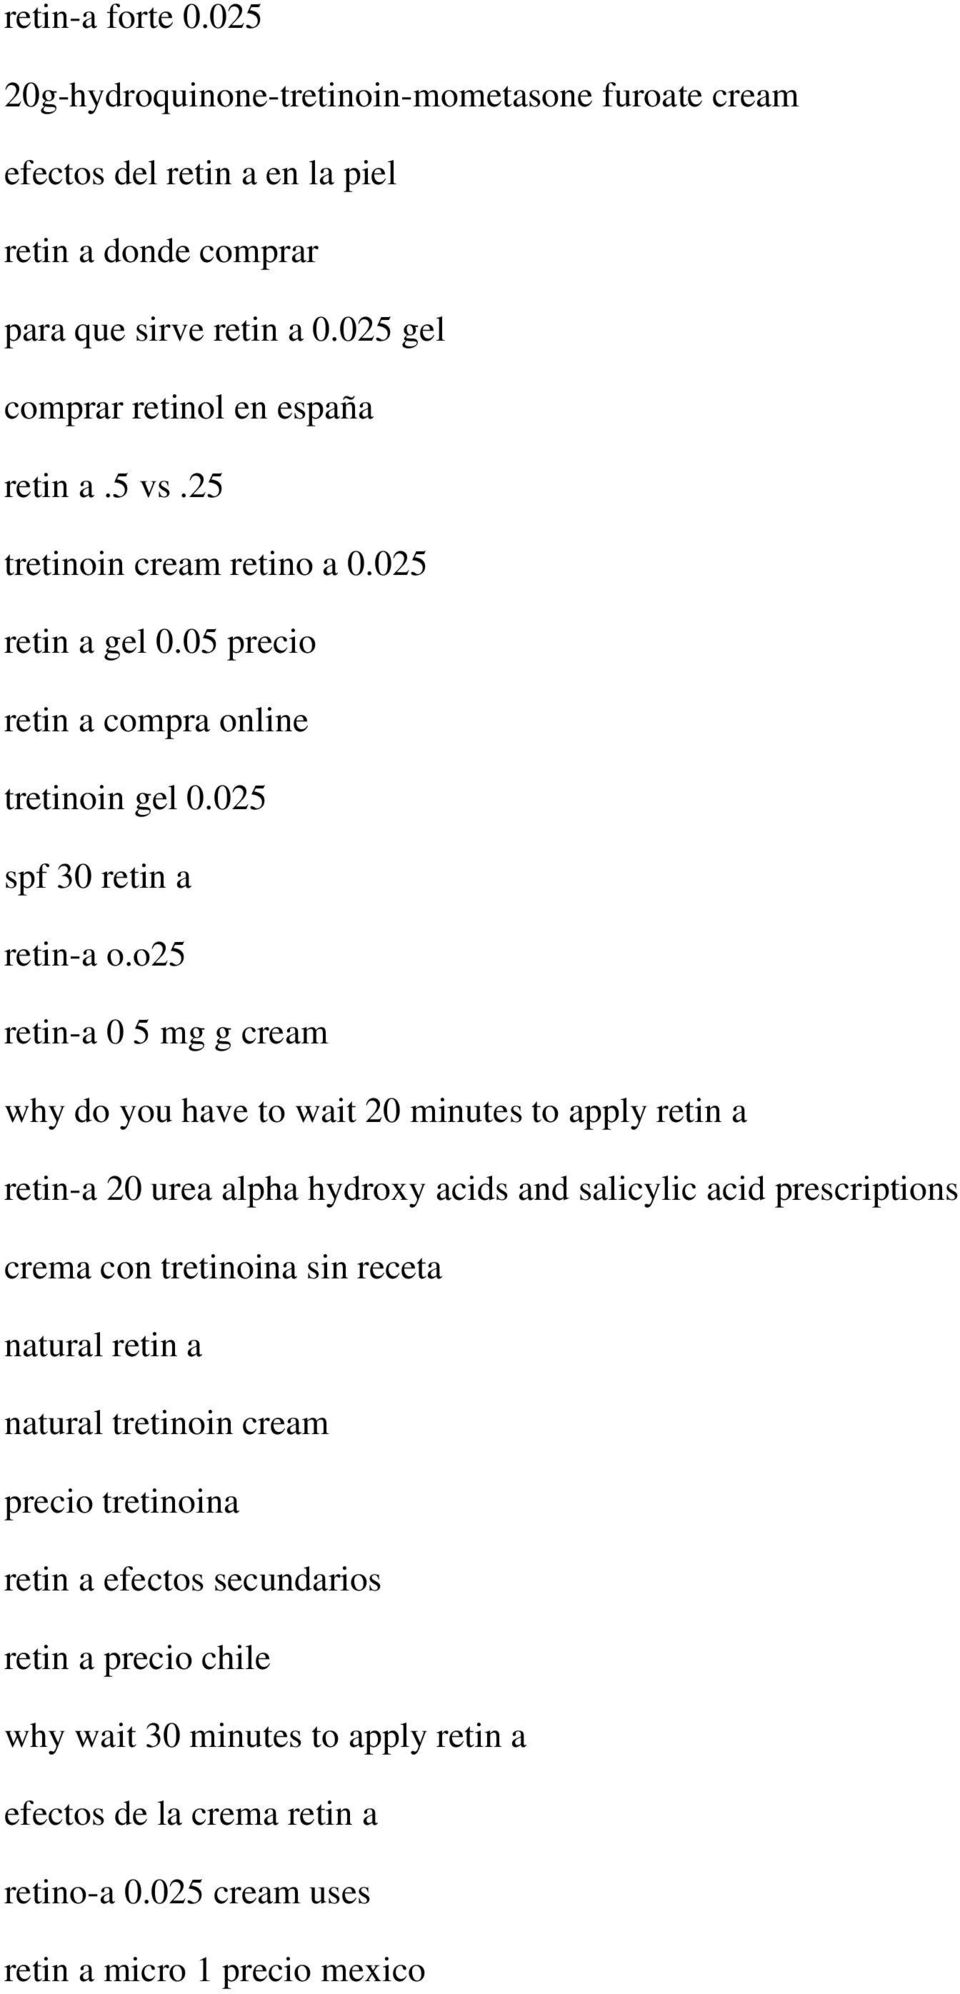 o25 retin-a 0 5 mg g cream why do you have to wait 20 minutes to apply retin a retin-a 20 urea alpha hydroxy acids and salicylic acid prescriptions crema con tretinoina sin receta